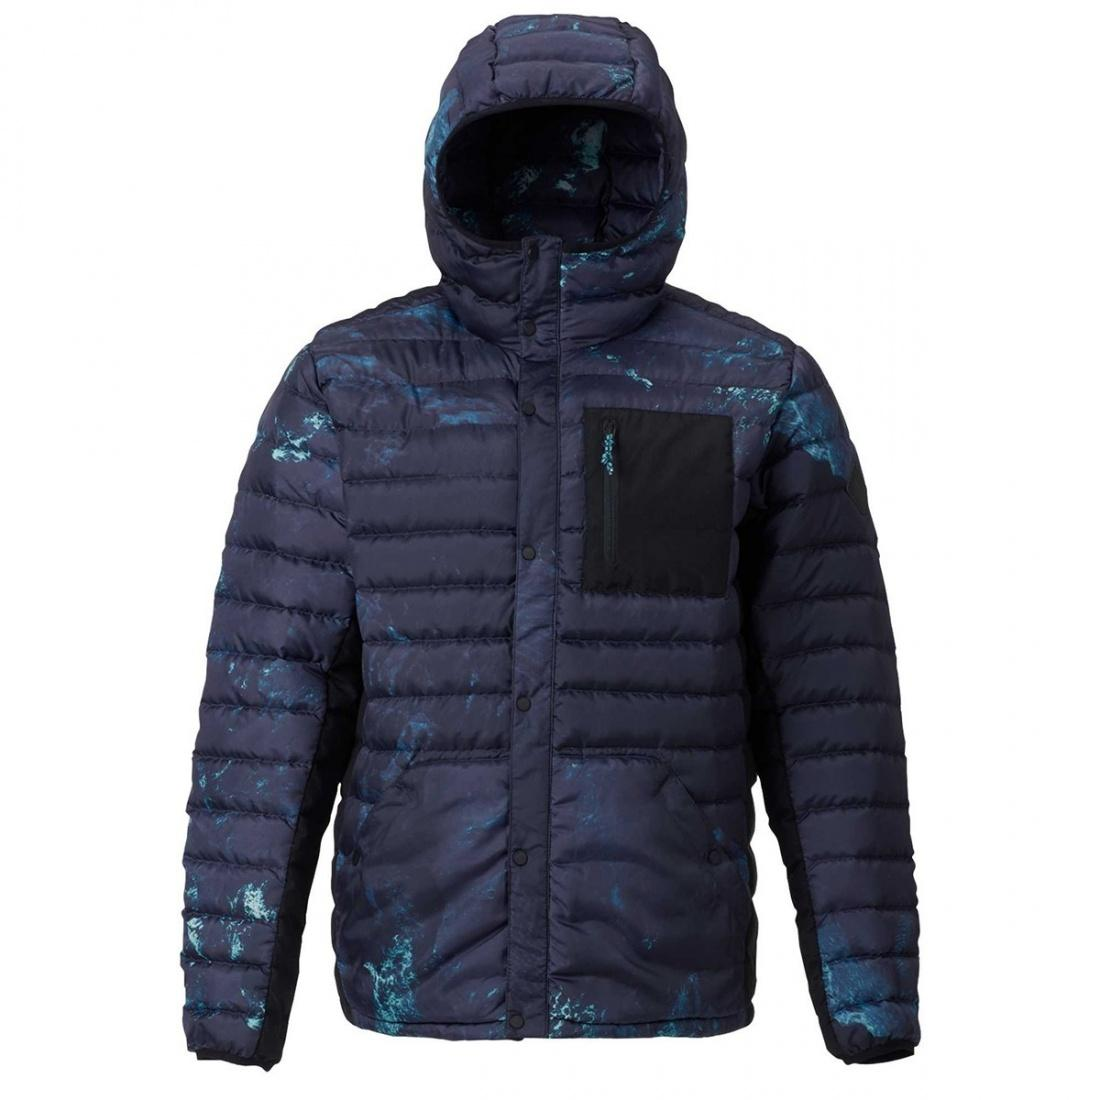 Burton Куртка пуховая Burton Evergreen Hooded Down Insulator NIX OLYMPICA, , , FW18 L burton термоноски burton party sock wings fw18 l